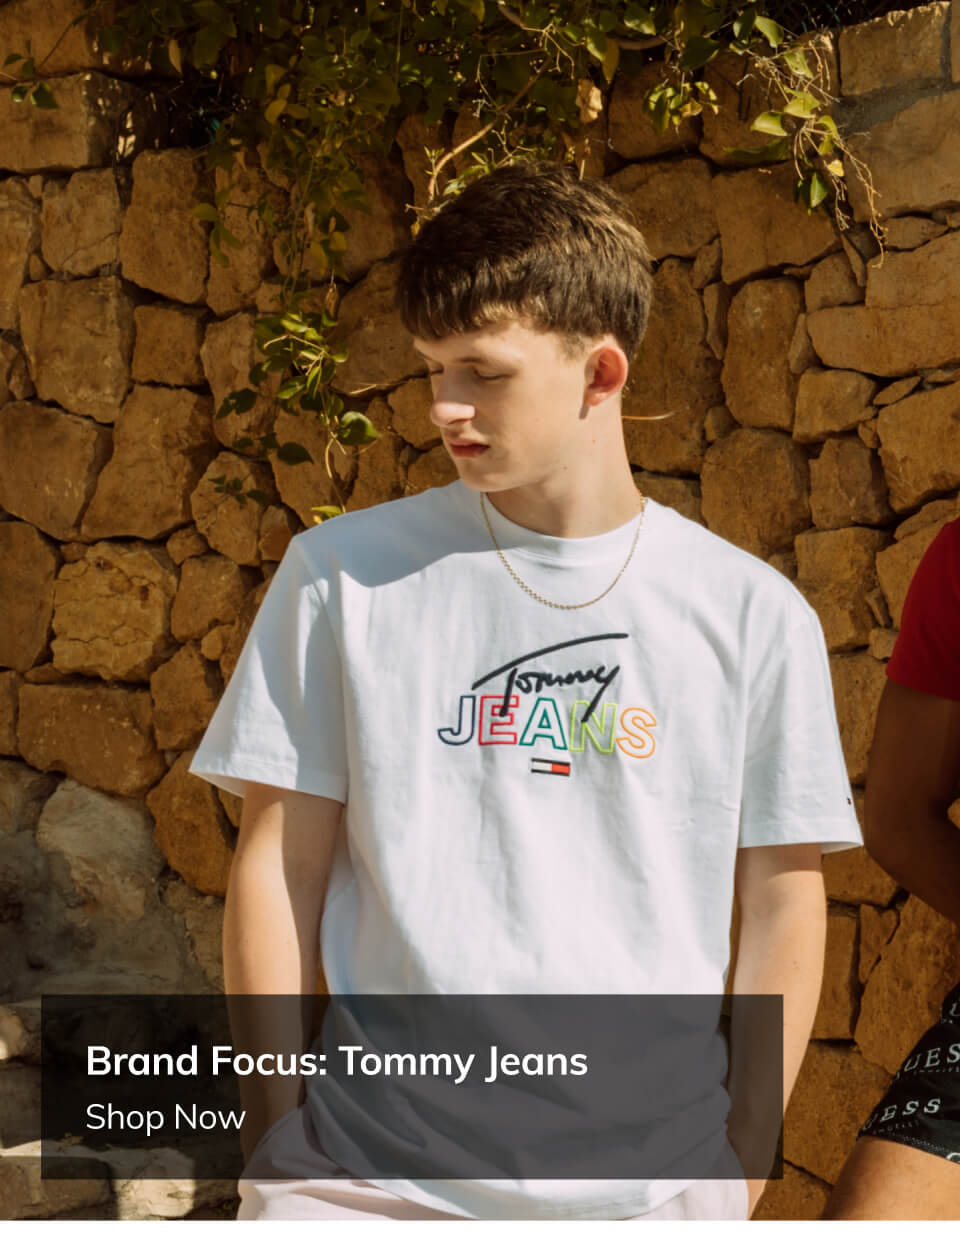 Brand Focus: Tommy Jeans